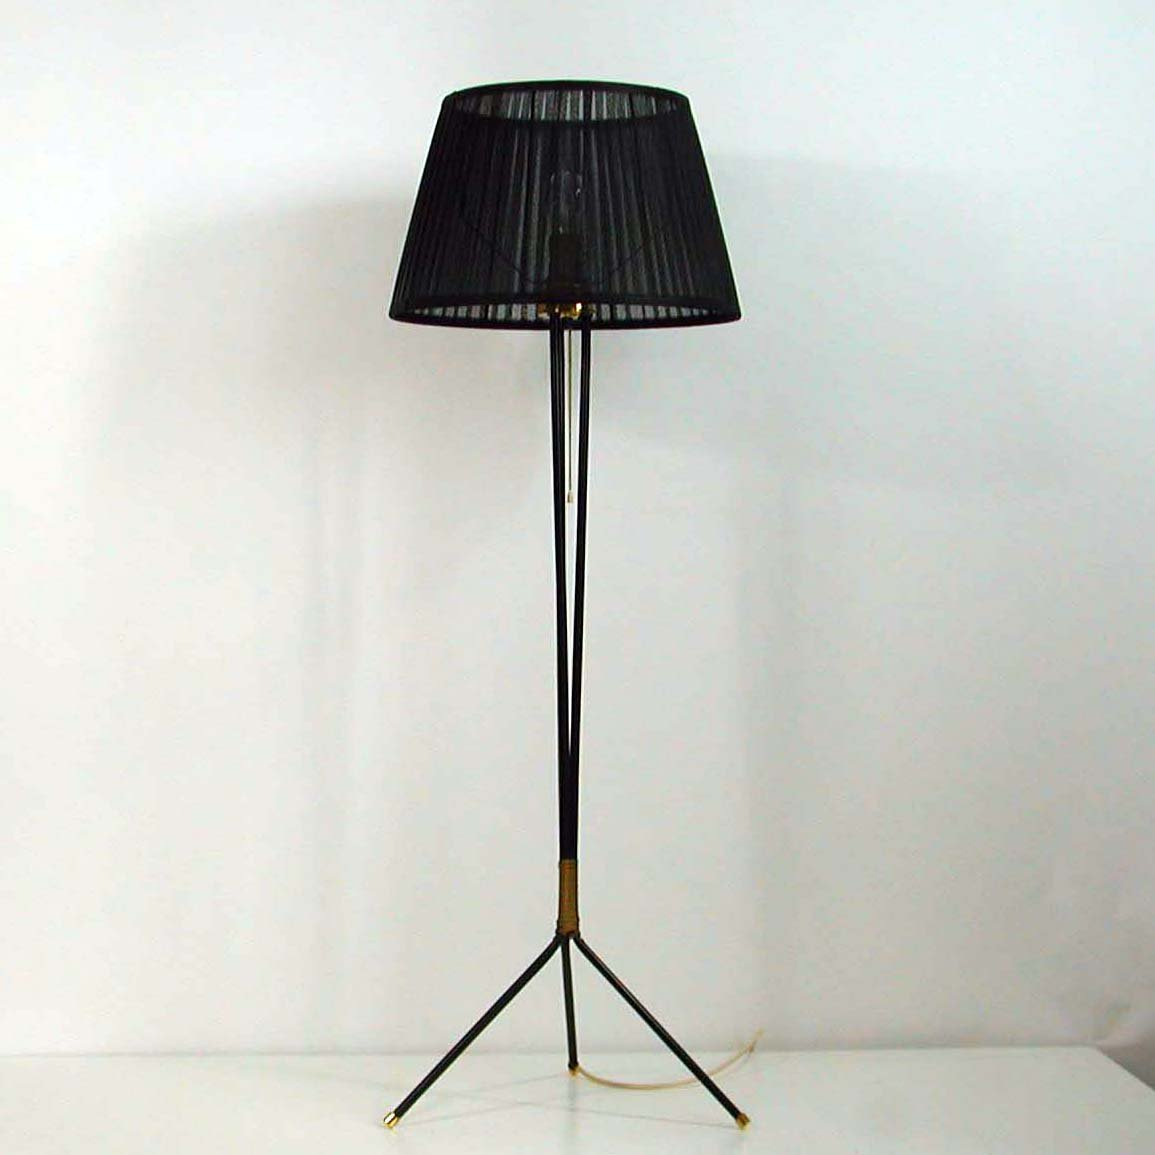 Black tripod floor lamp 1950s for sale at pamono for 1950 floor lamp